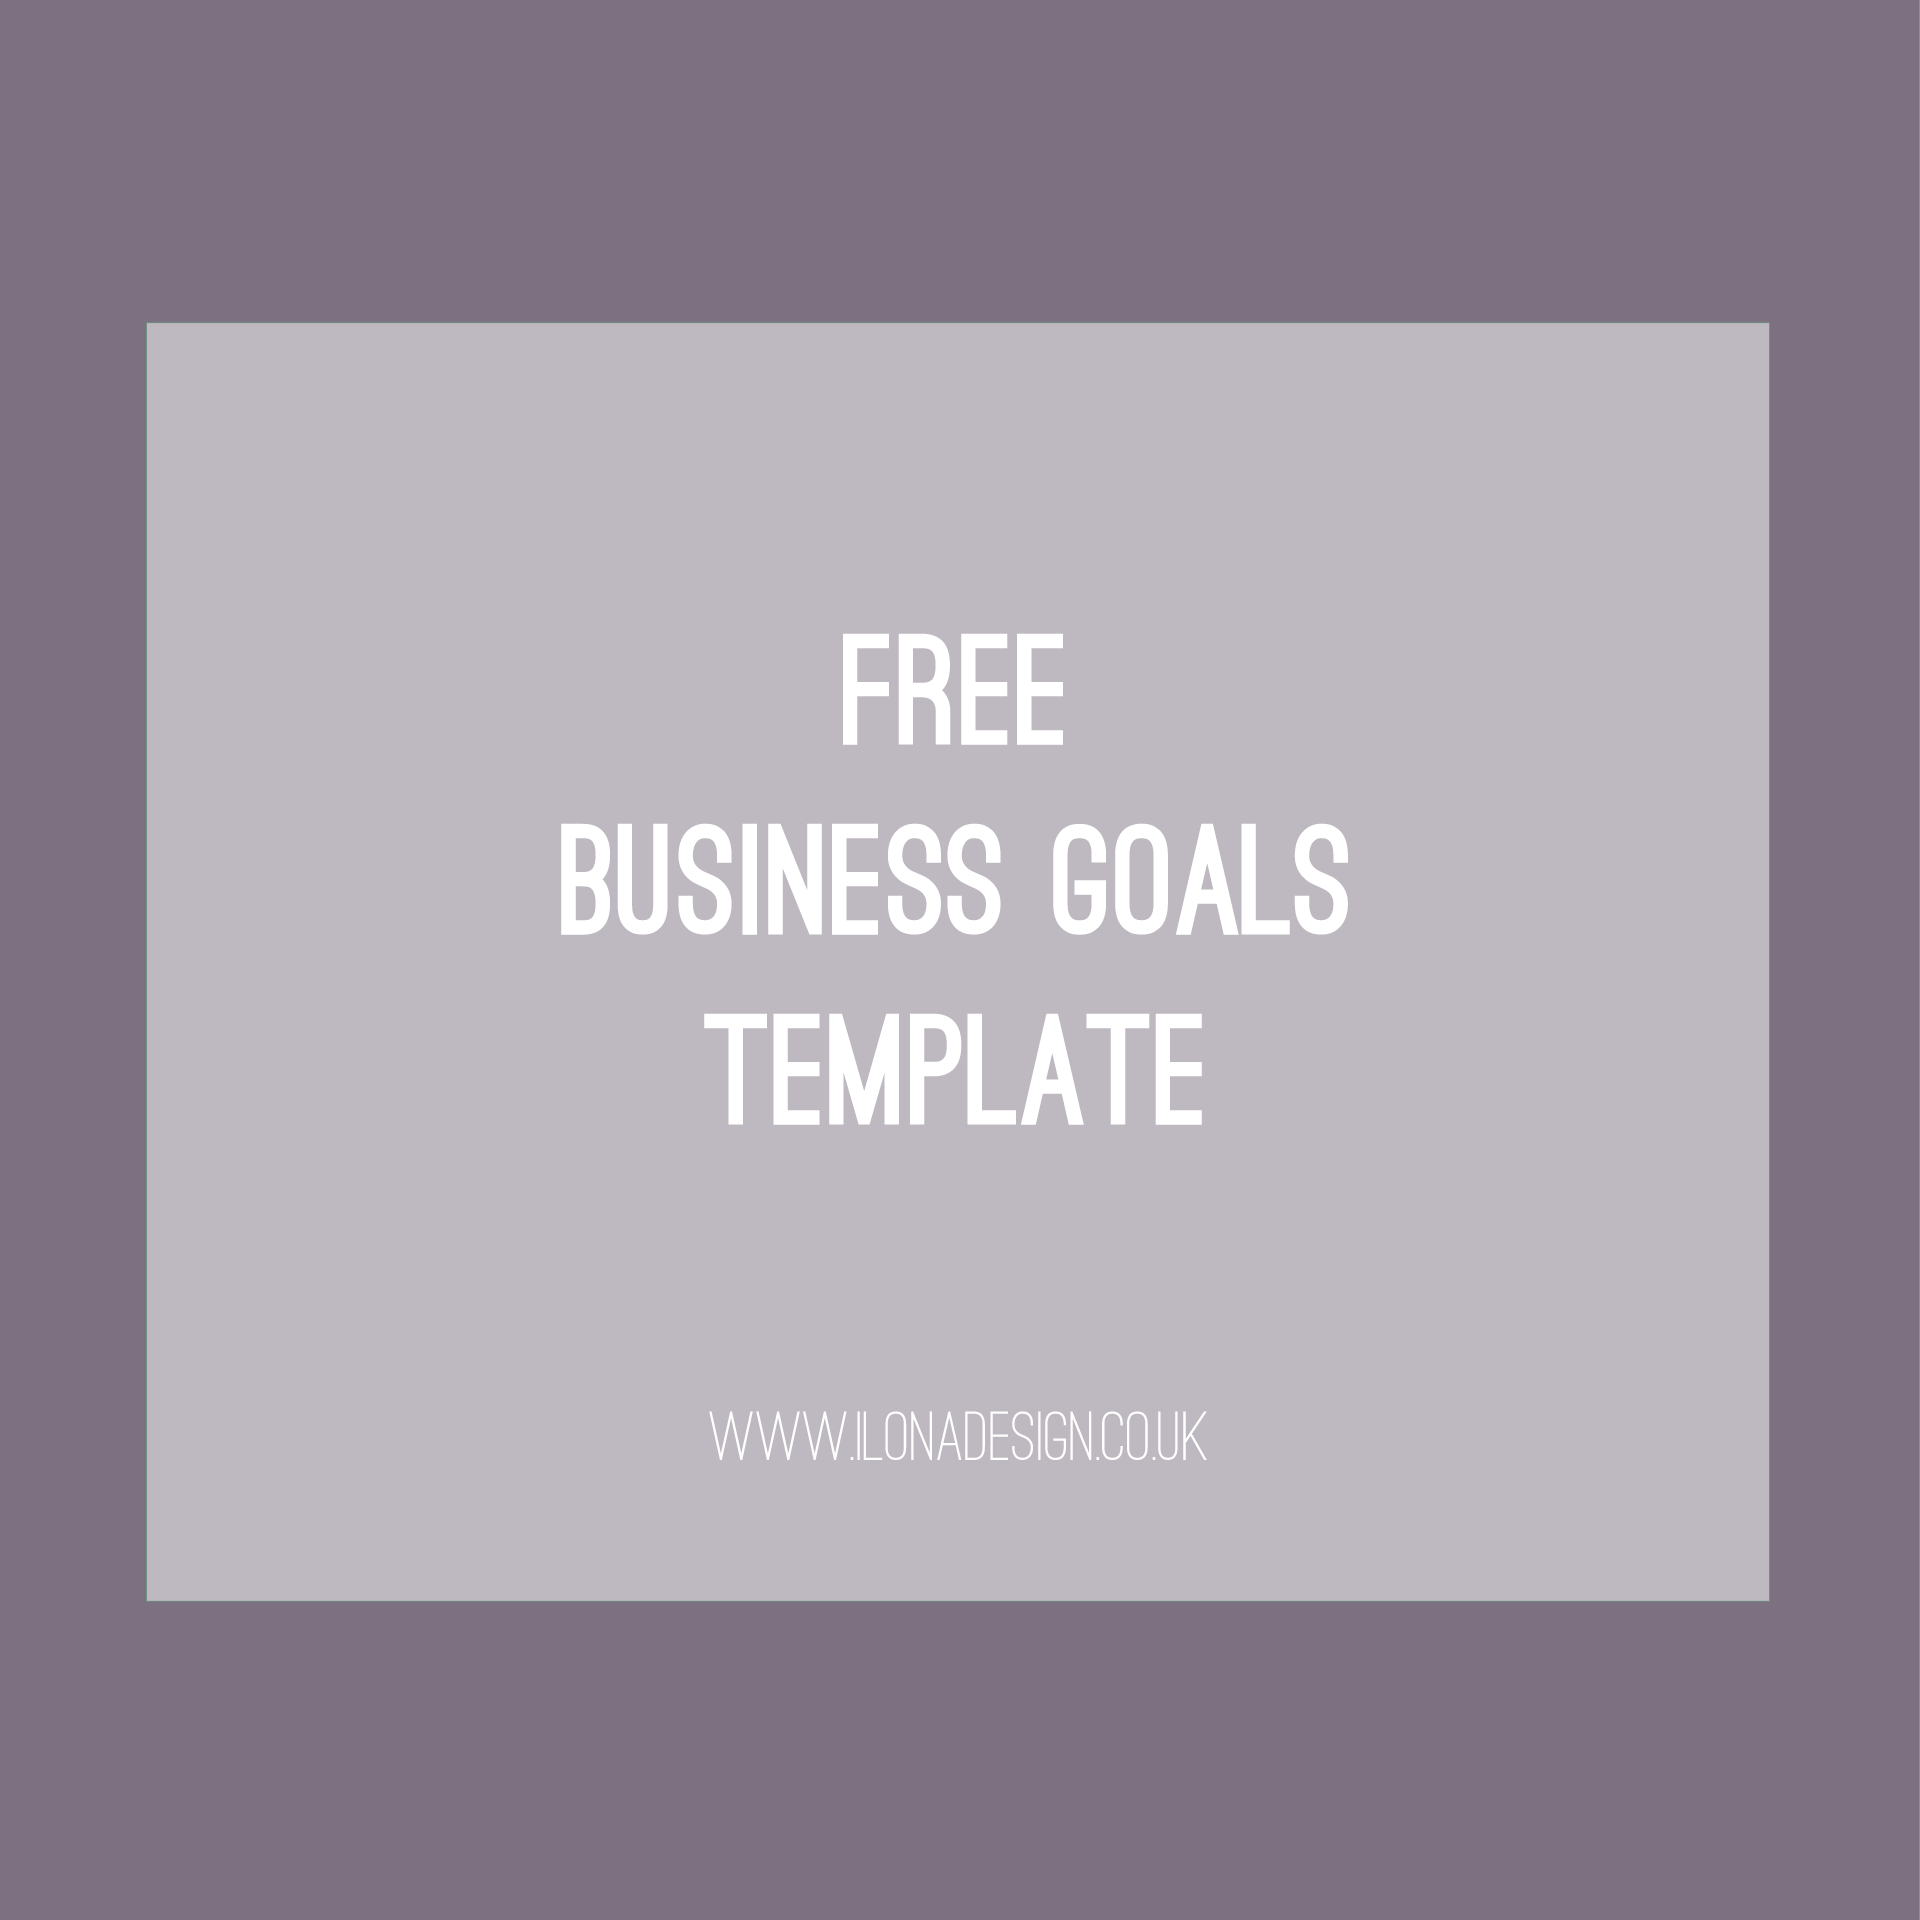 Free Business Goals Template